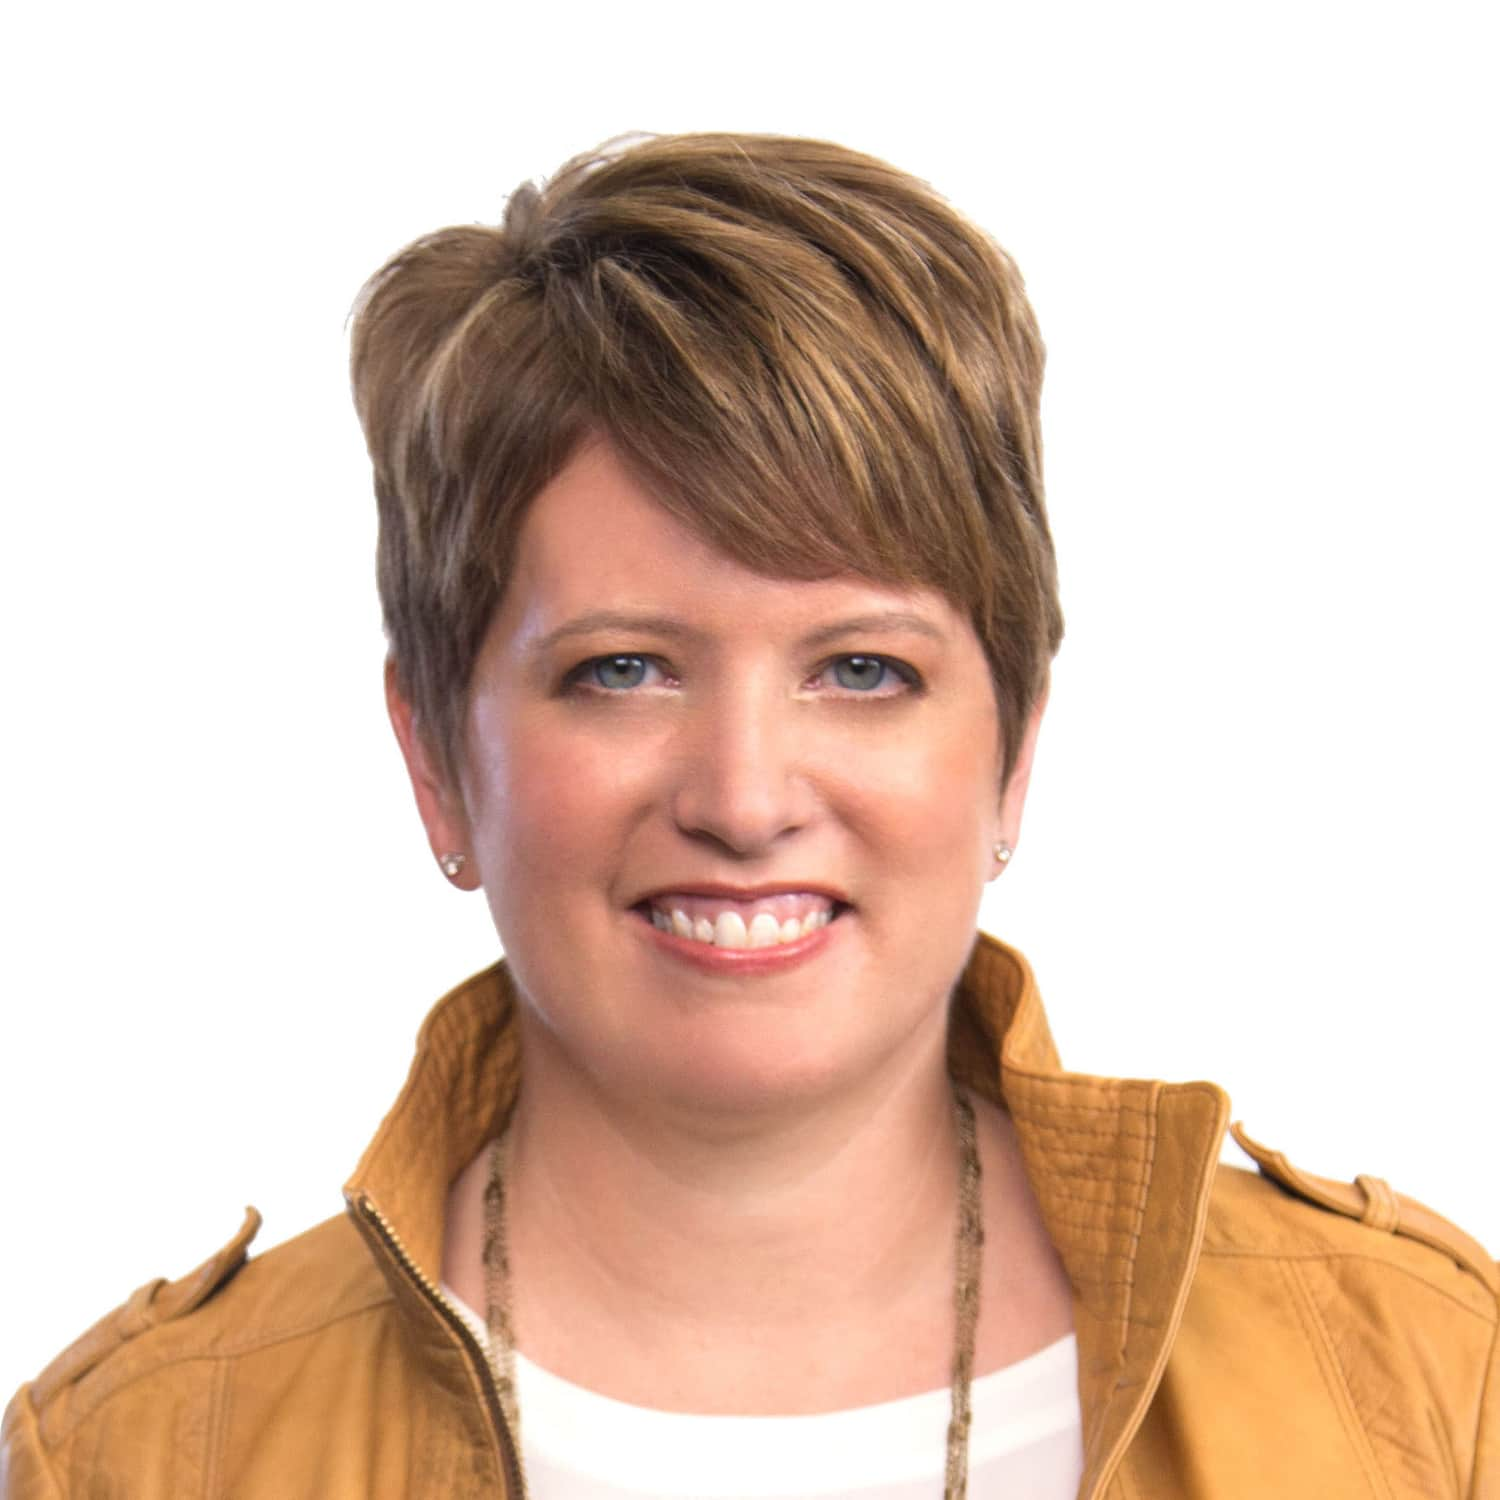 Angie Hicks, co-founder of Angie's List